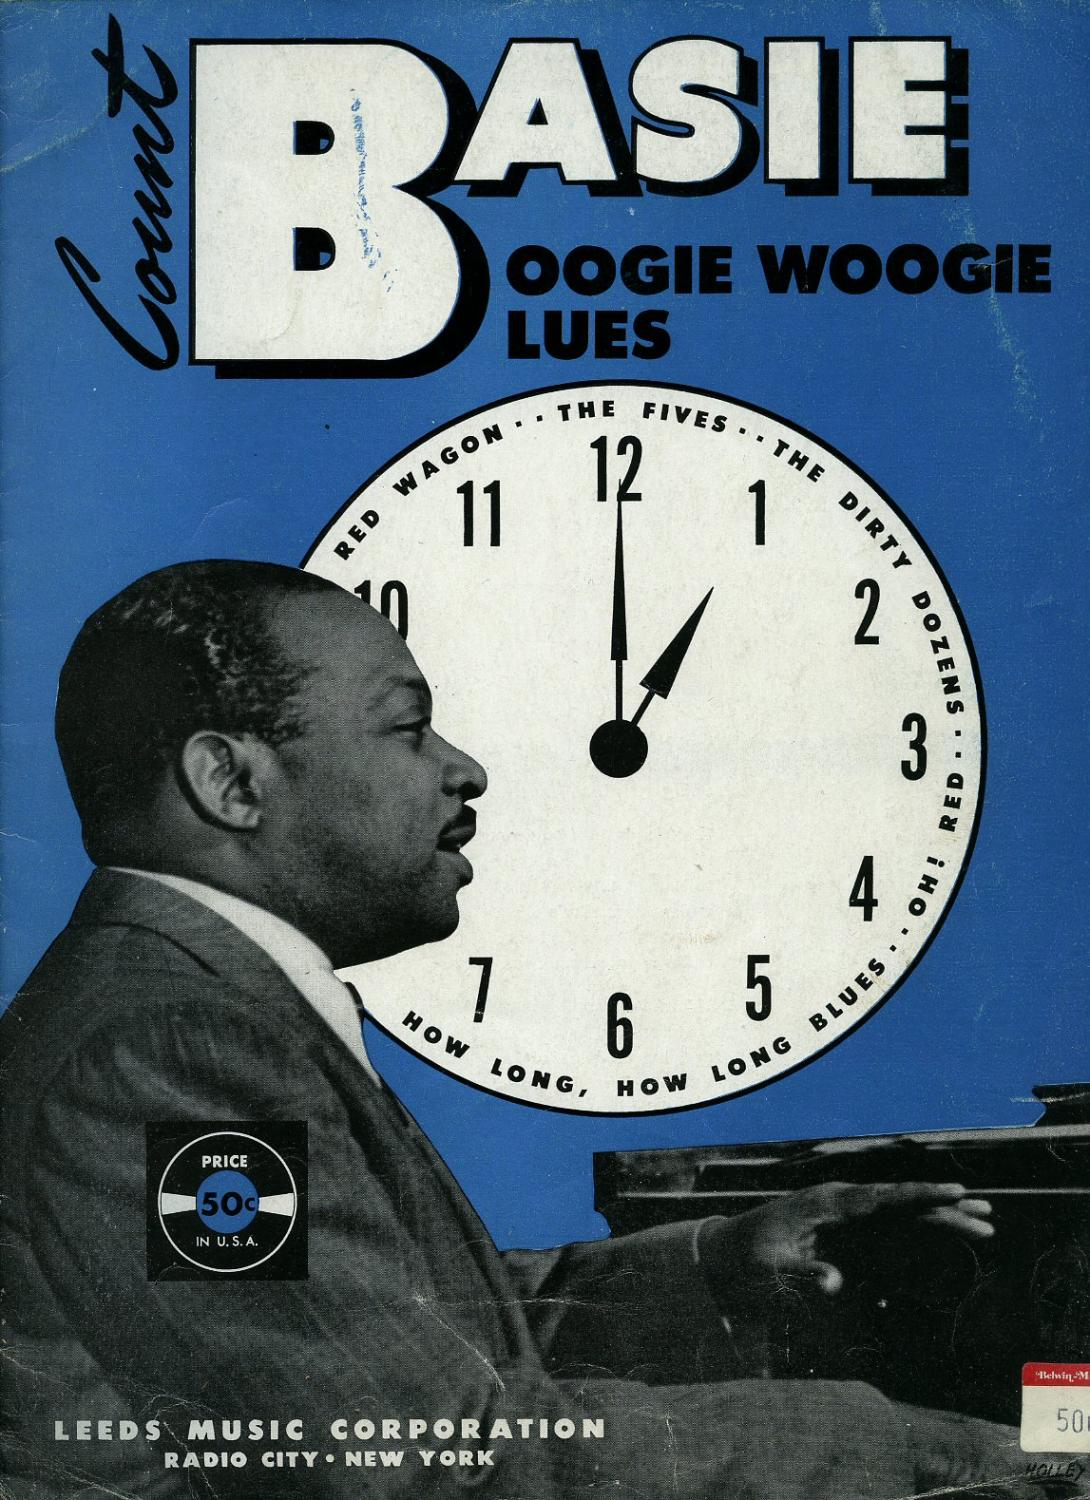 Count Basie Boogie Woogie Blues [Piano Sheet